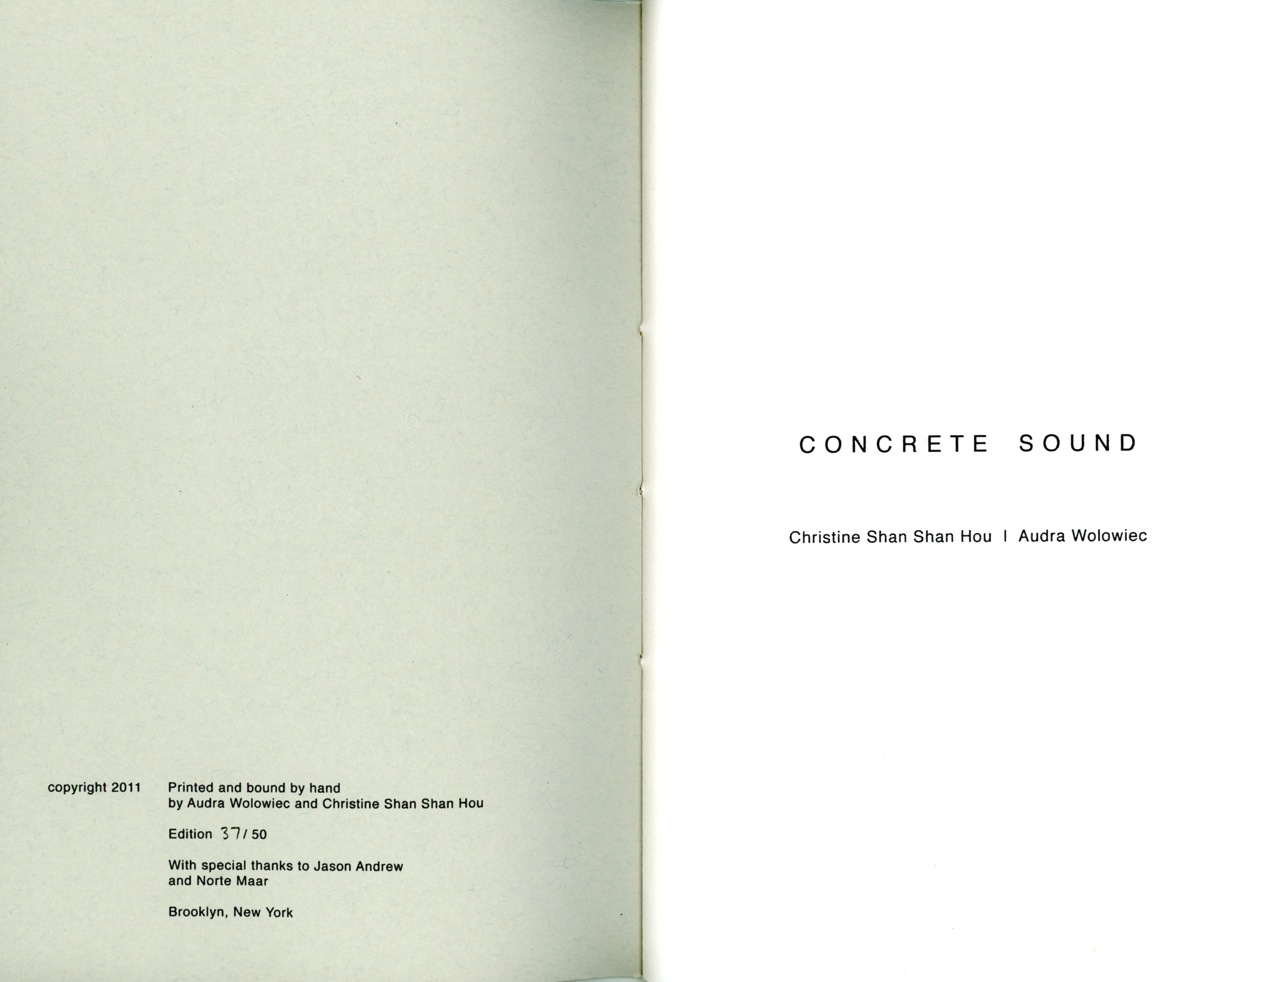 concrete_sound-Acknowledgements